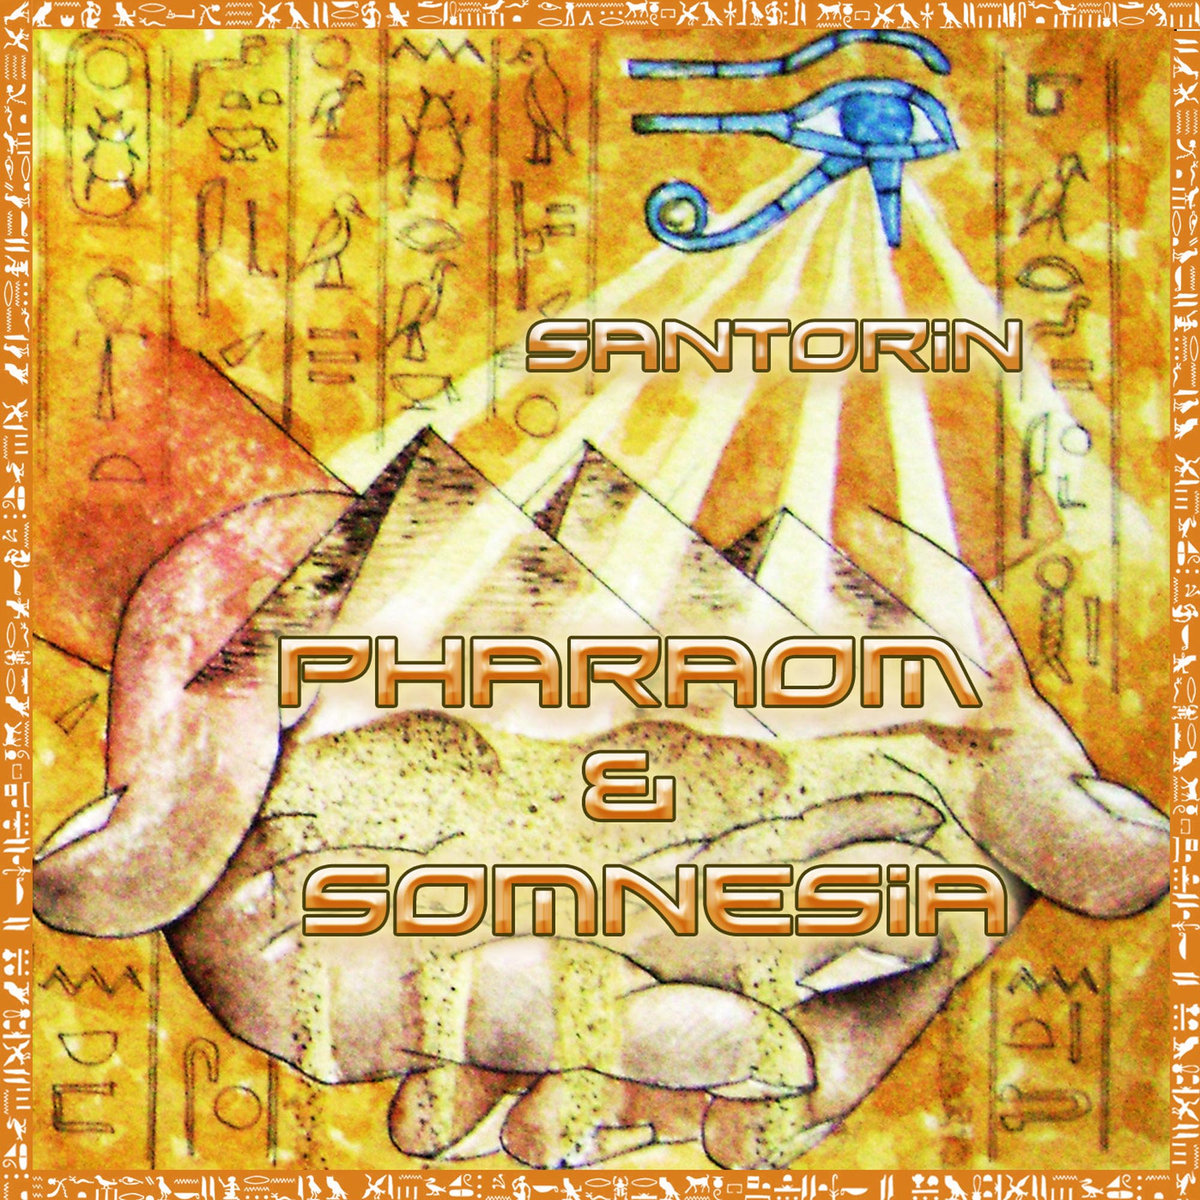 Somnesia & PharaOm - Santorin (artwork)